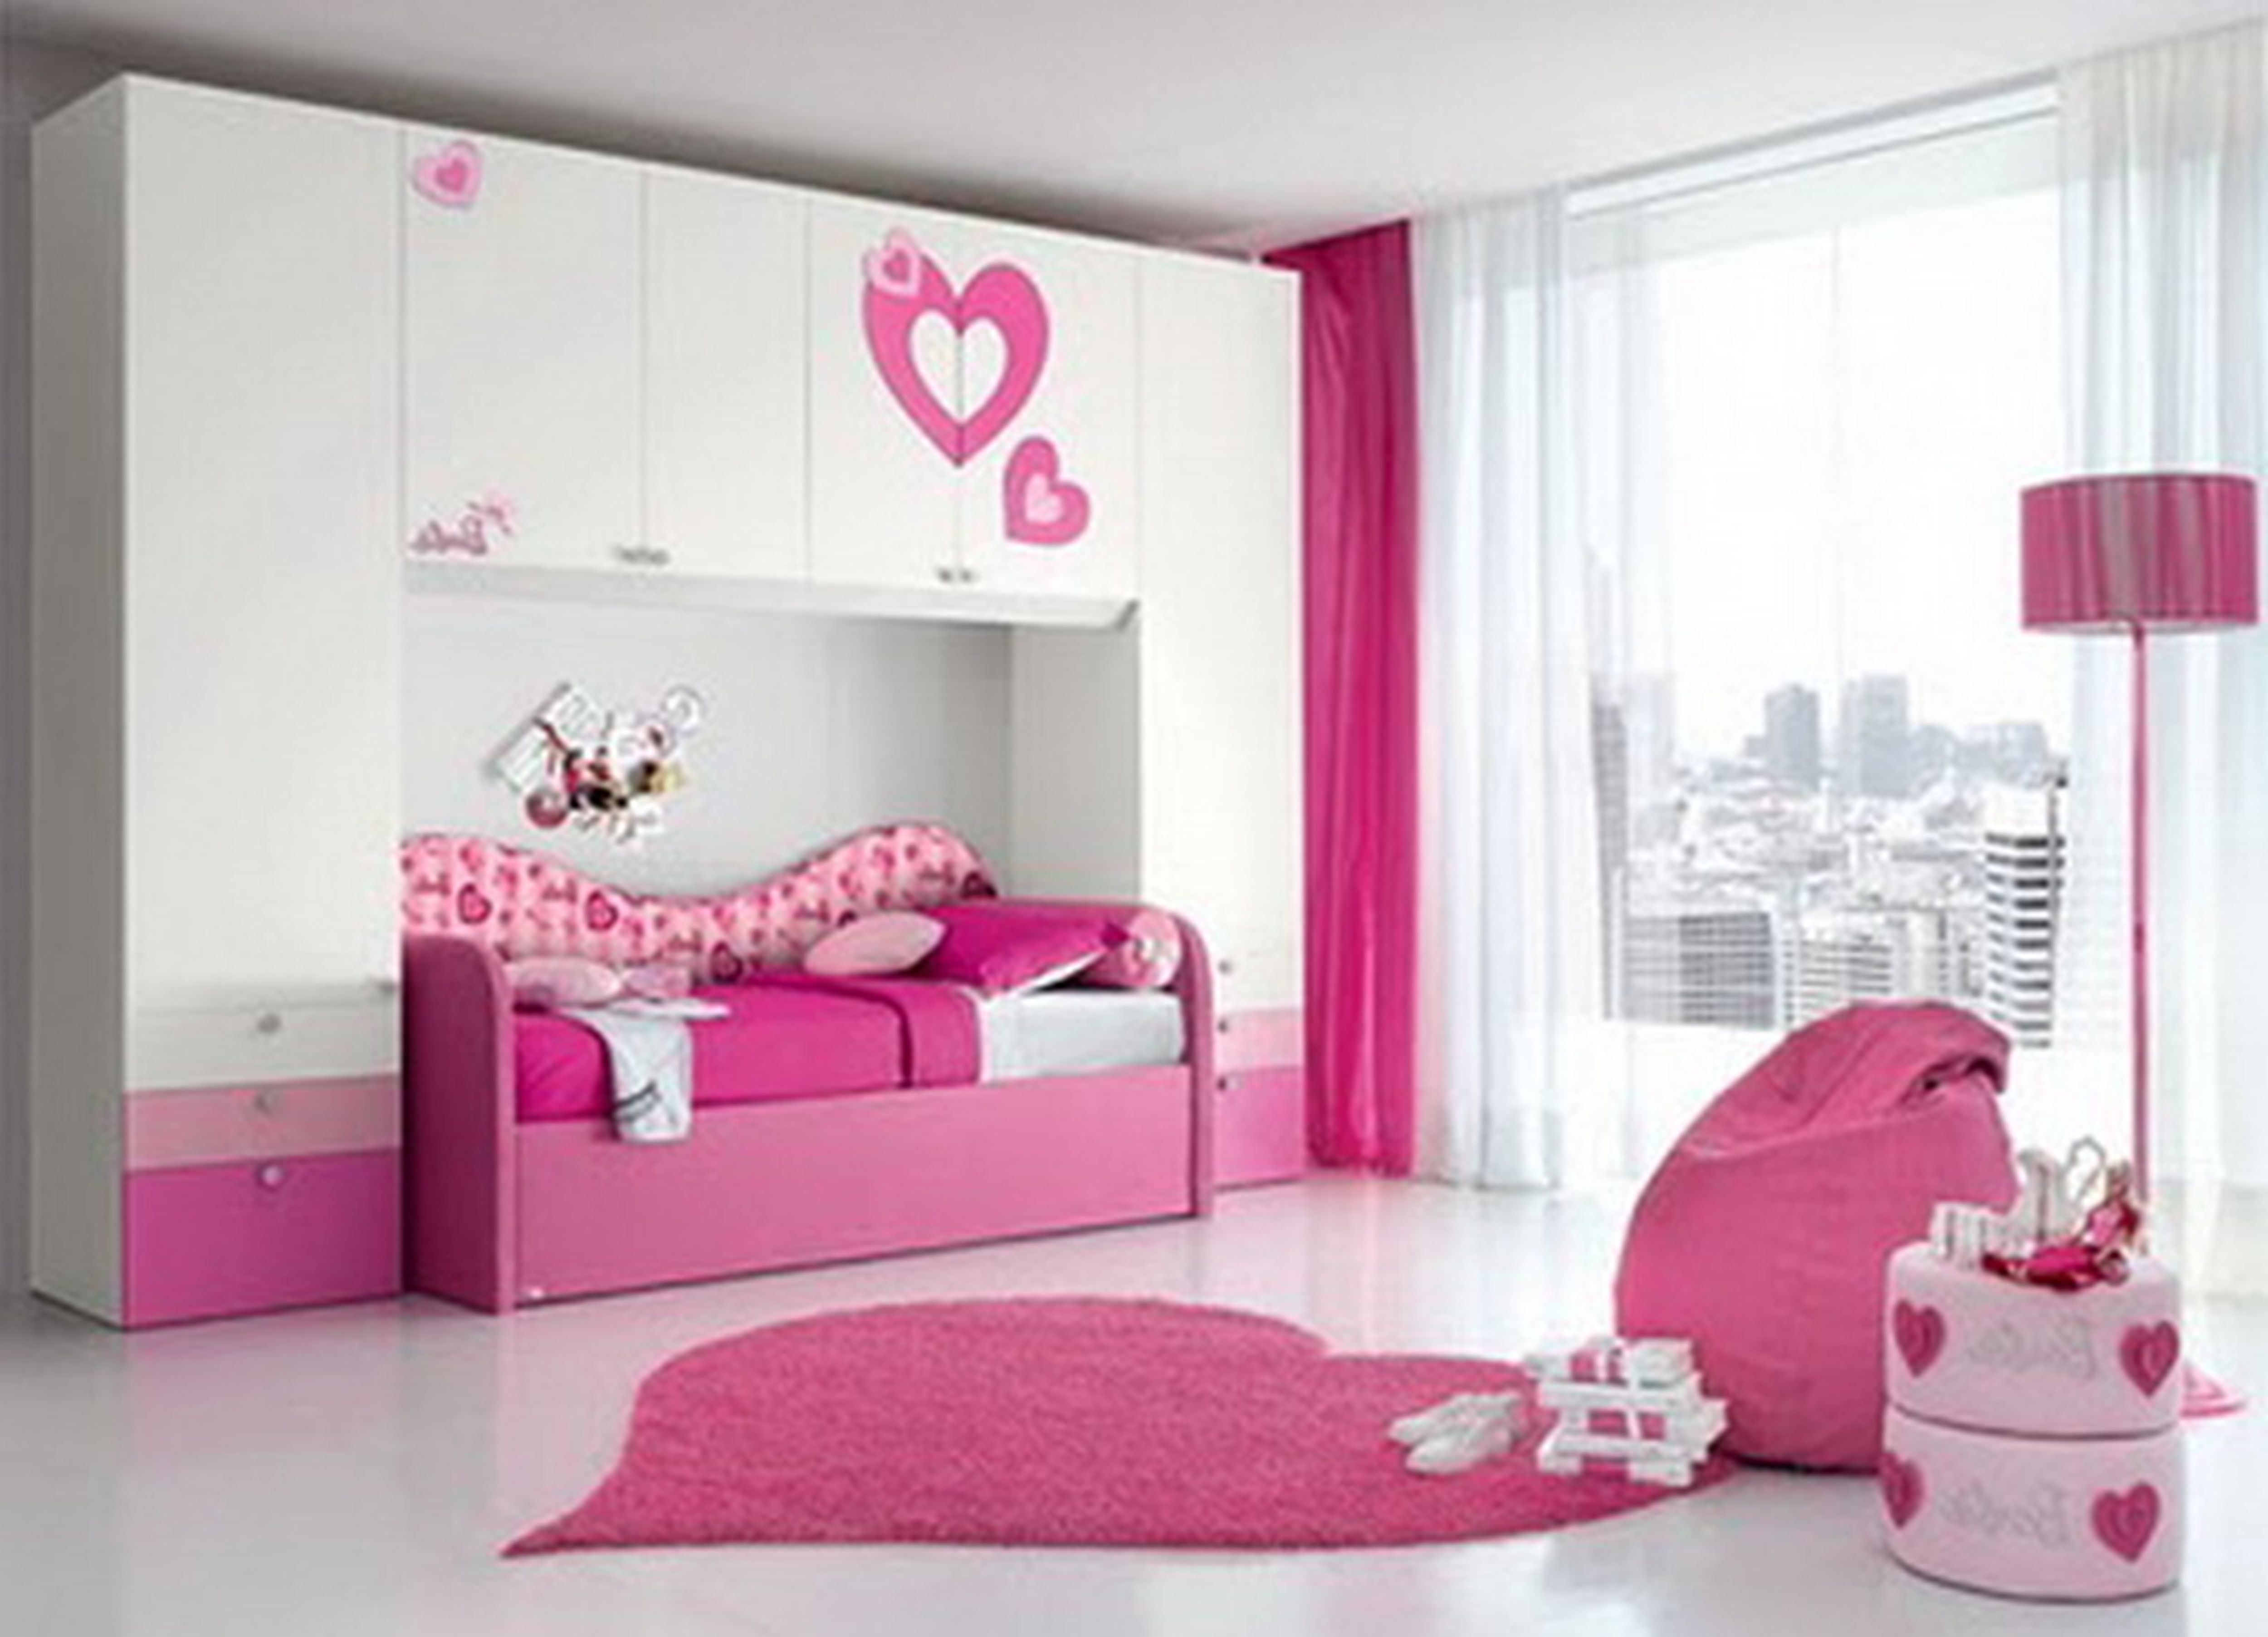 Elegant Bedroom,Splendid Ikea Small Designer Bedroom With Cool White Closet And  Cute Pink Bed Frame Plus Pretty Pink Heart Shaped Rug Also Trendy Pink  Floor Lamp ...